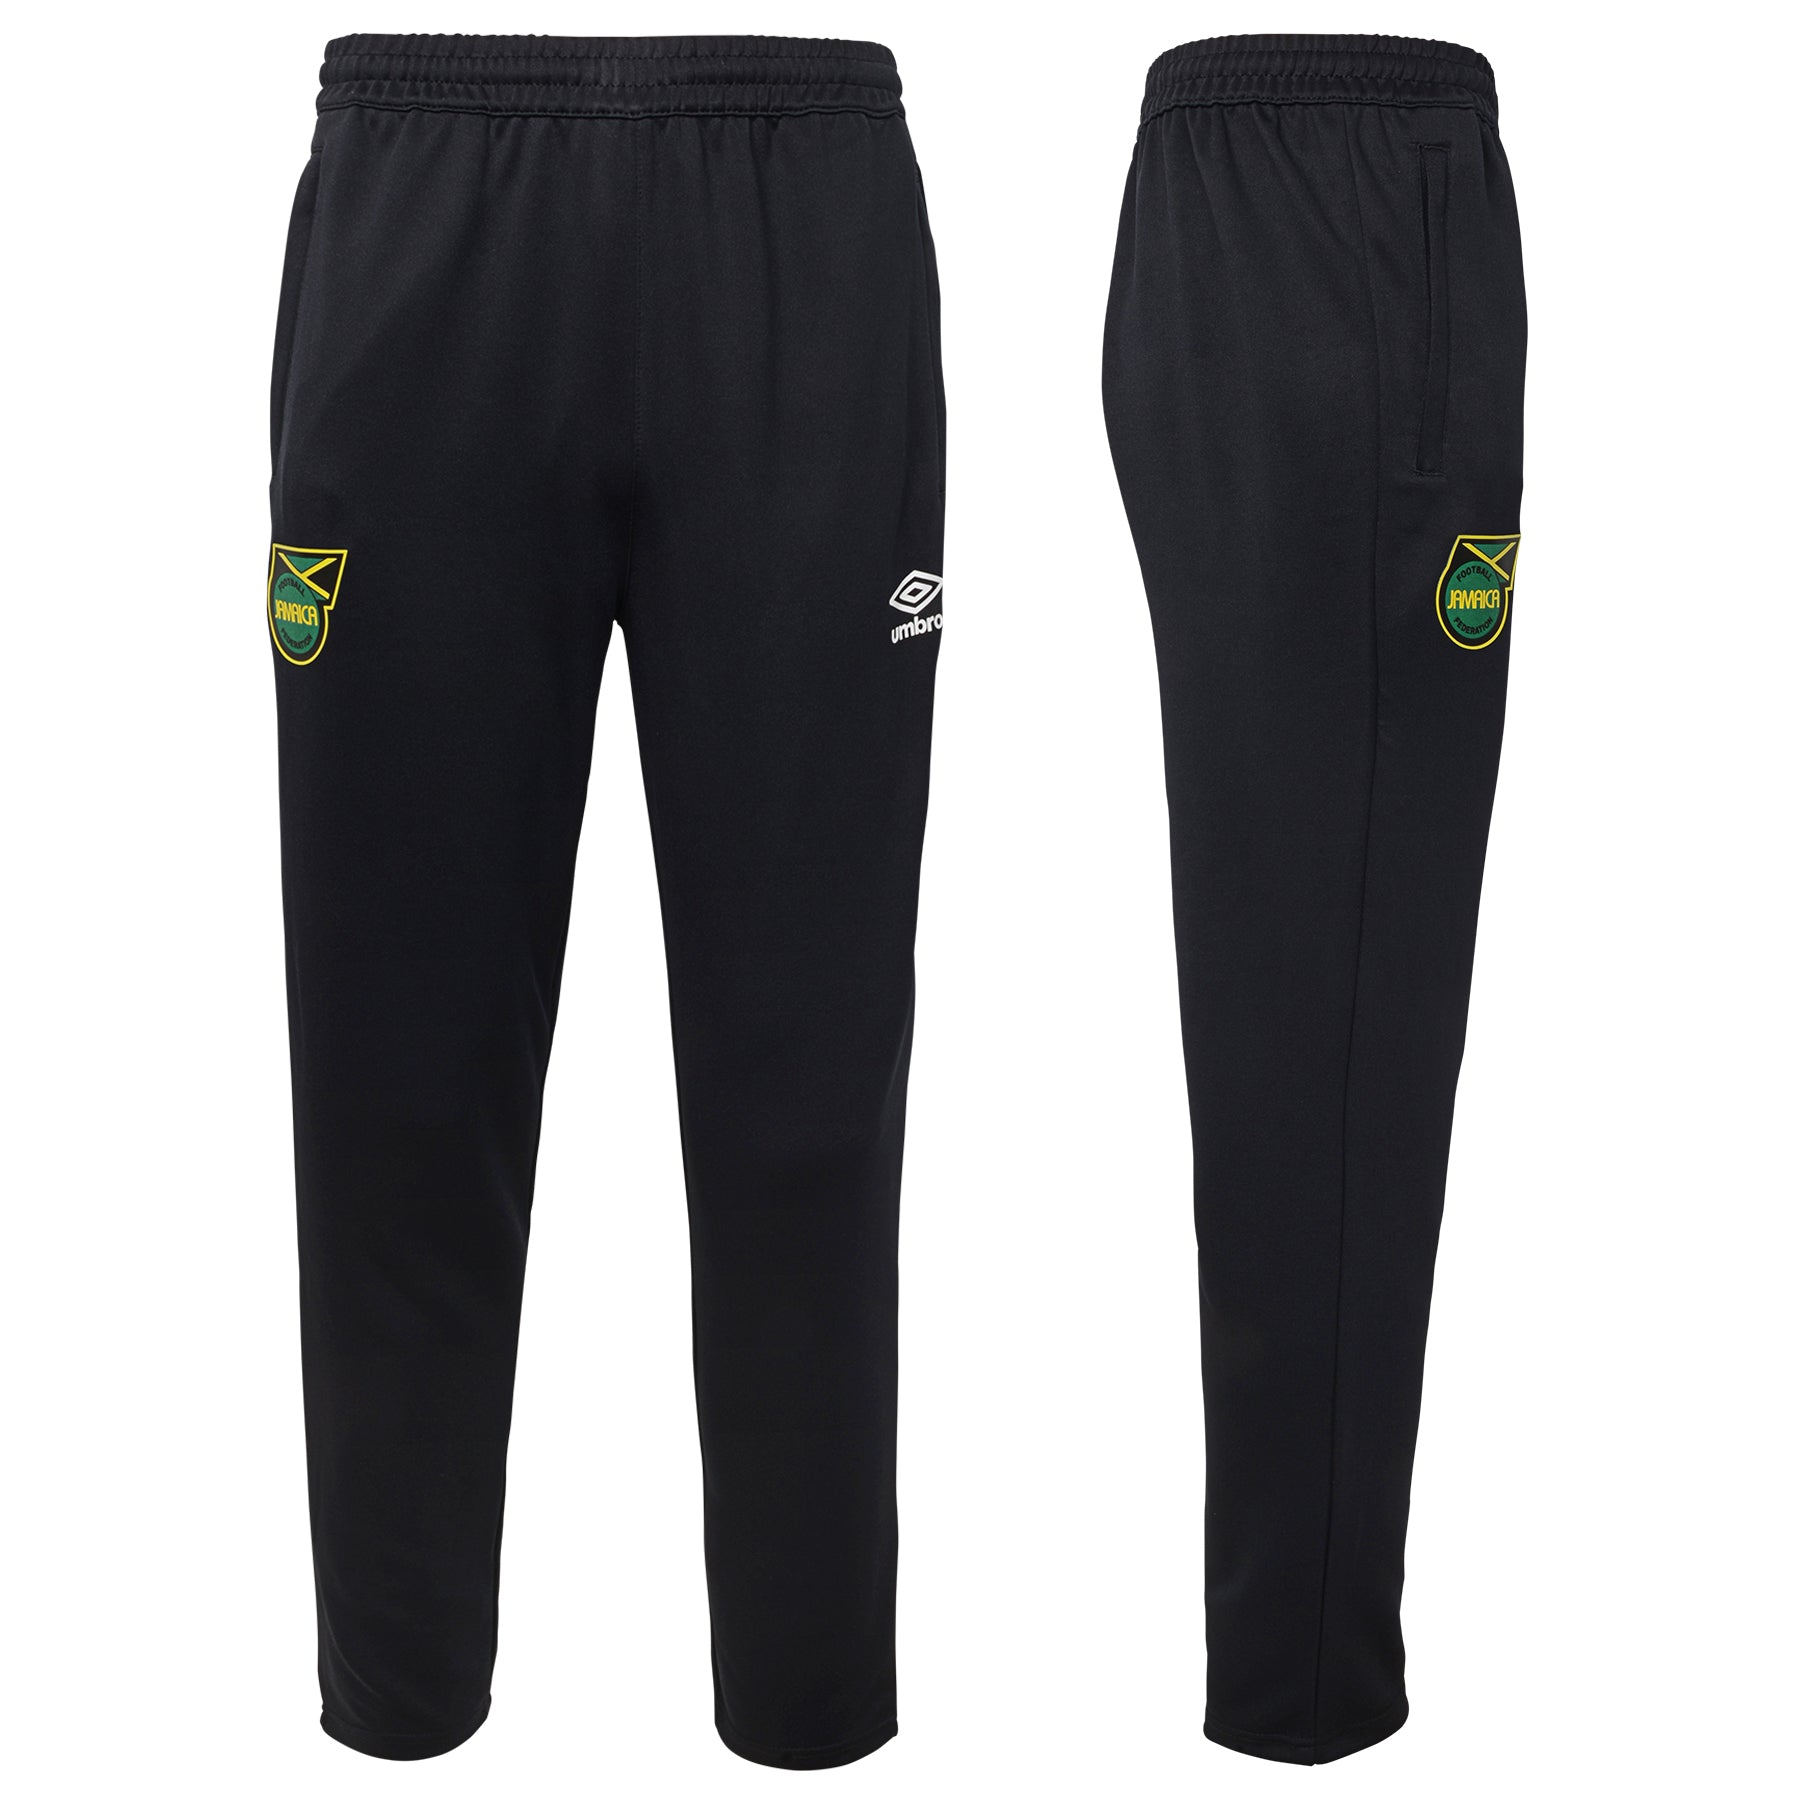 18/19 JAMAICA MEN'S LONG PANT